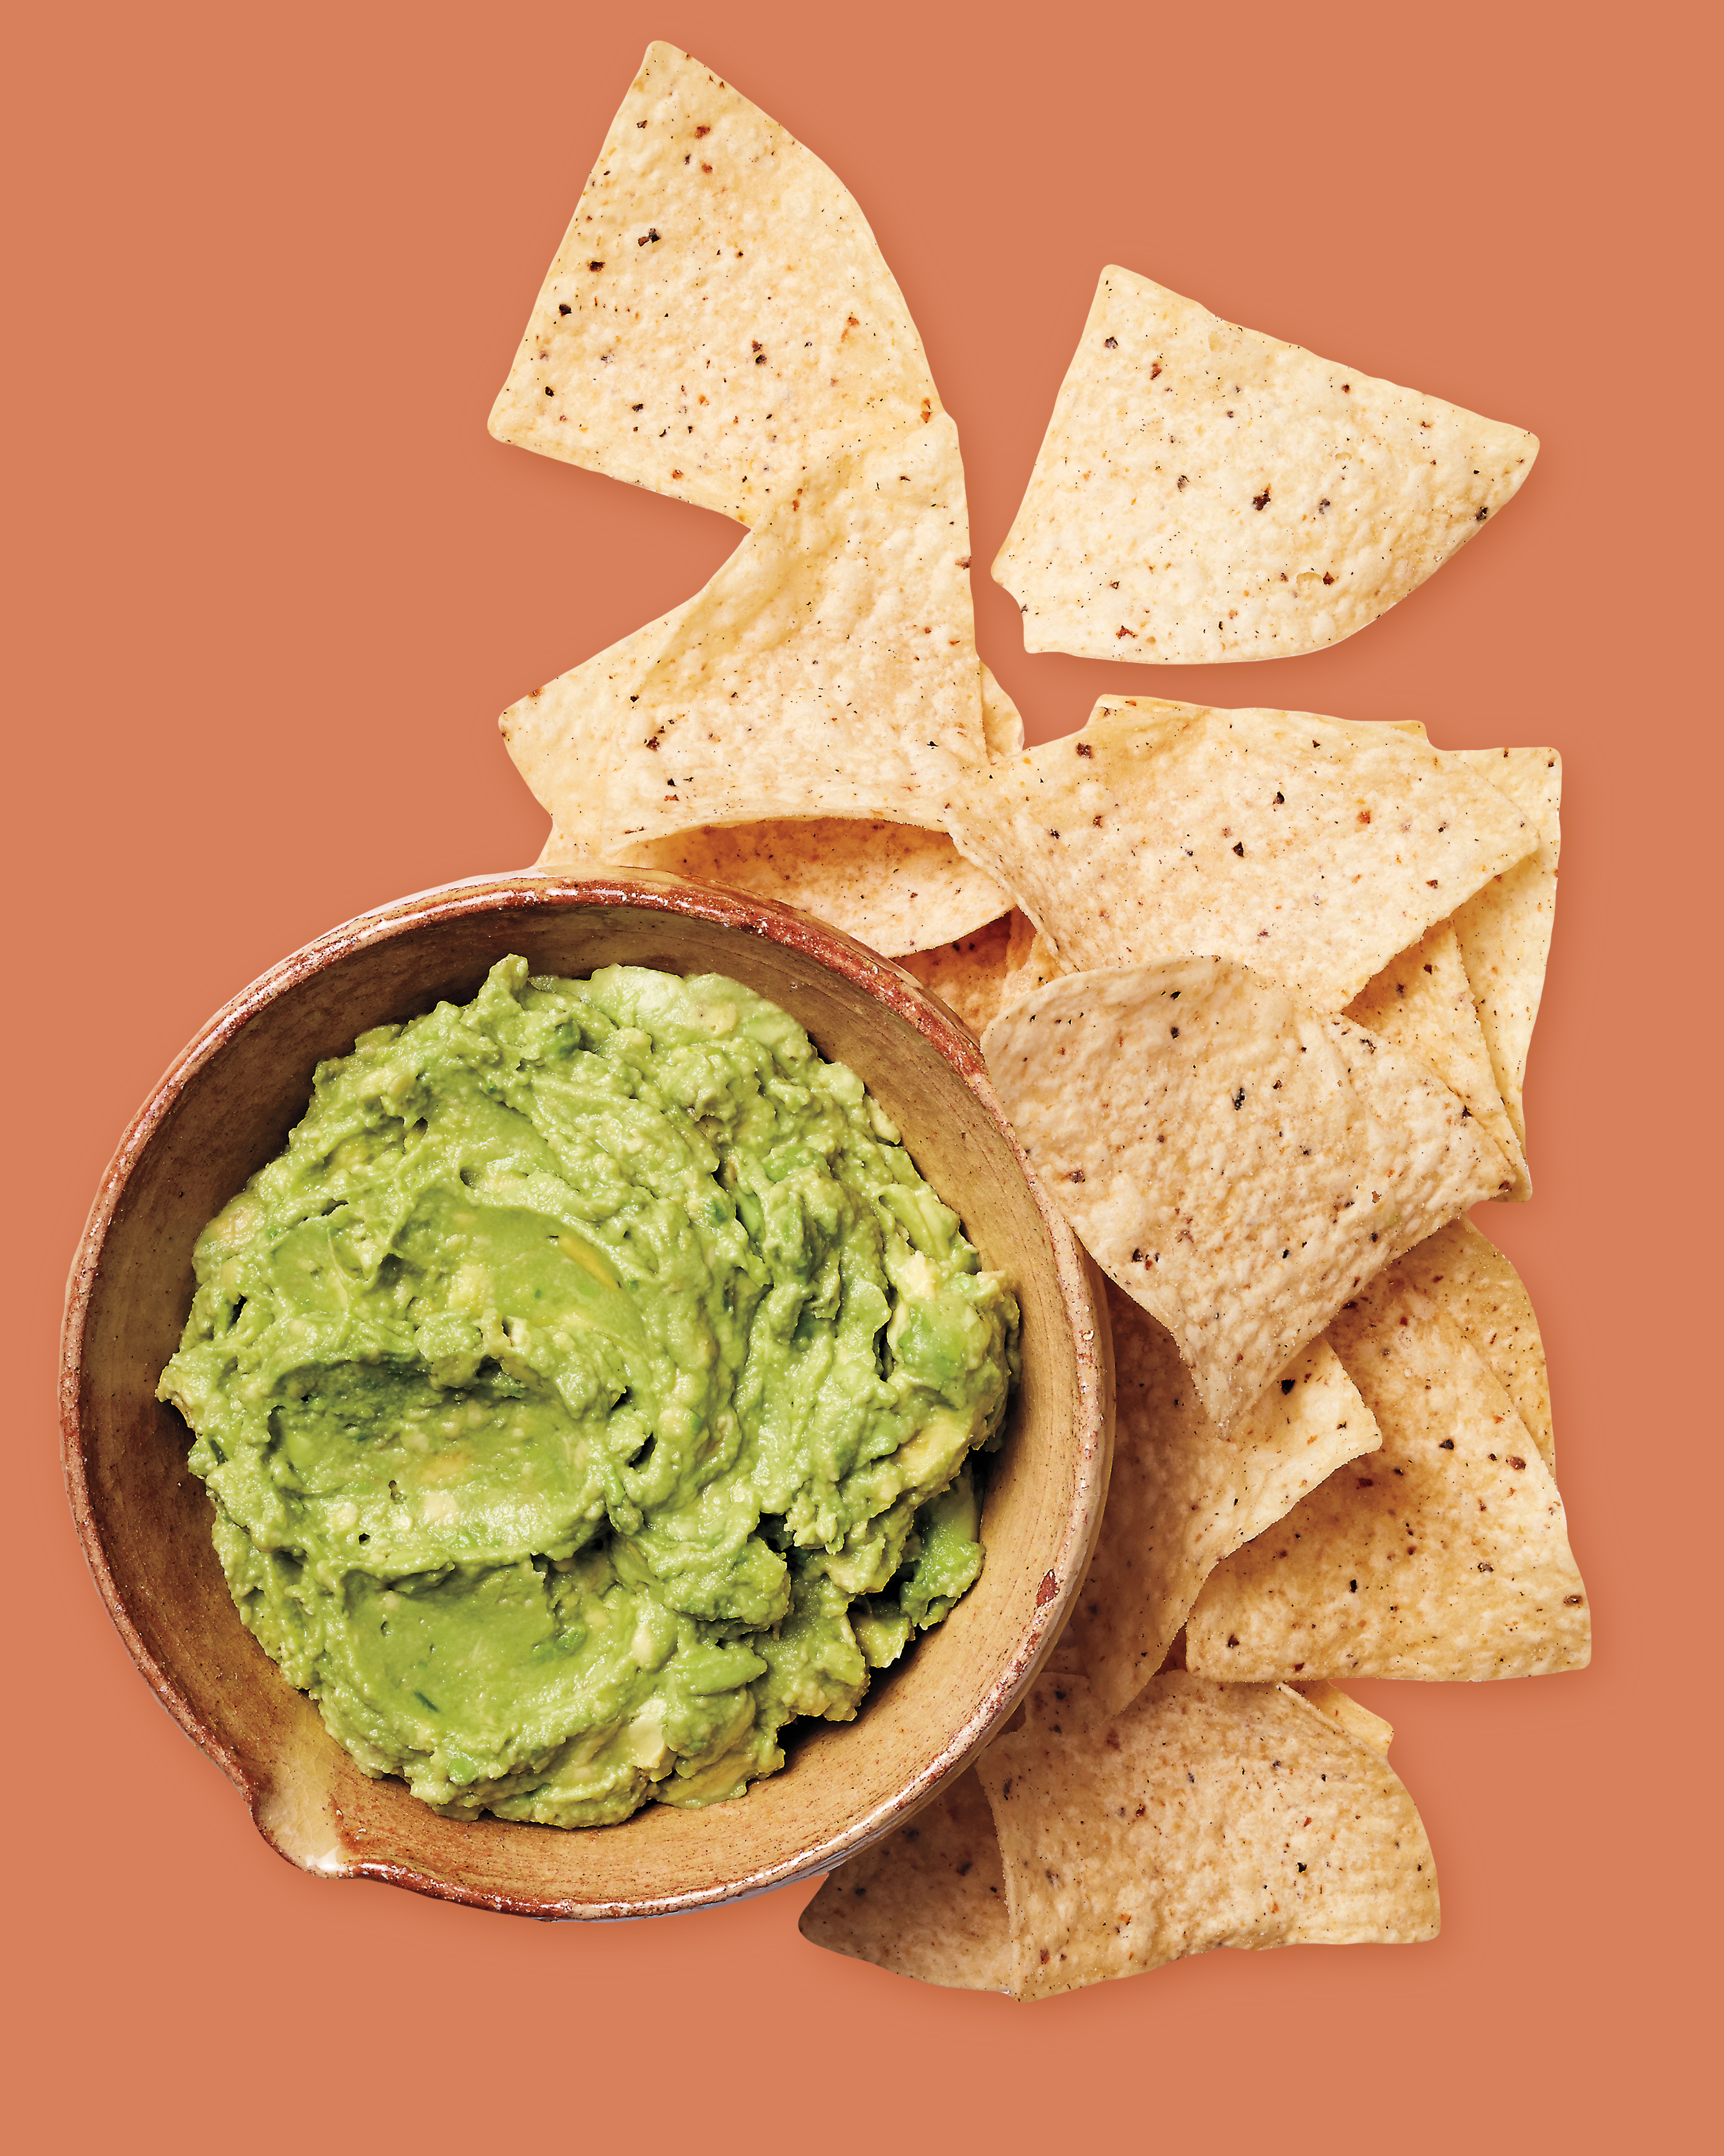 Follow These Three Tips for Perfect Guacamole Every Time